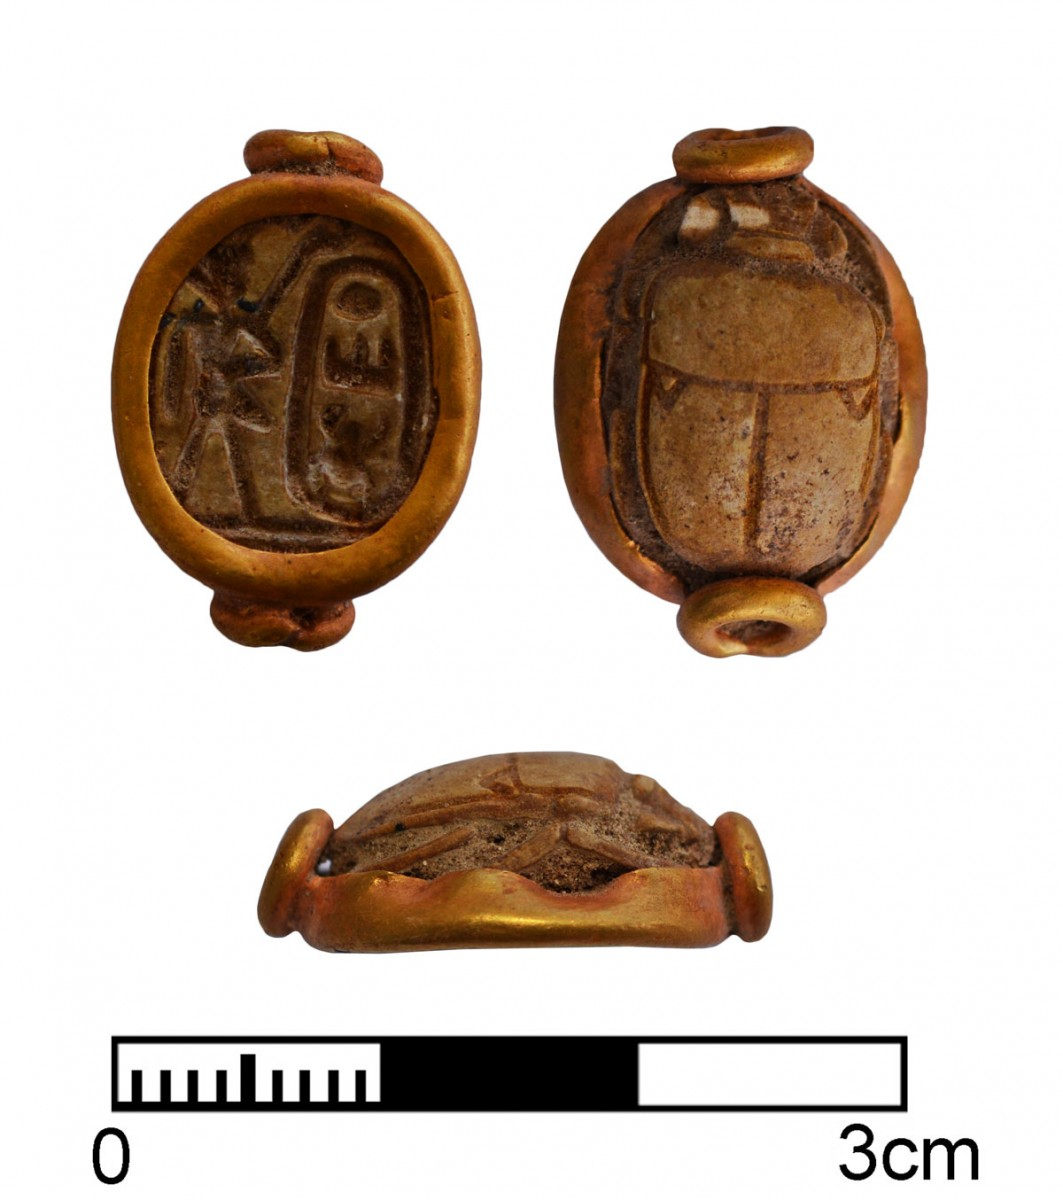 Scarab with the cartouche of Thutmosis III (1479-1425 BC).